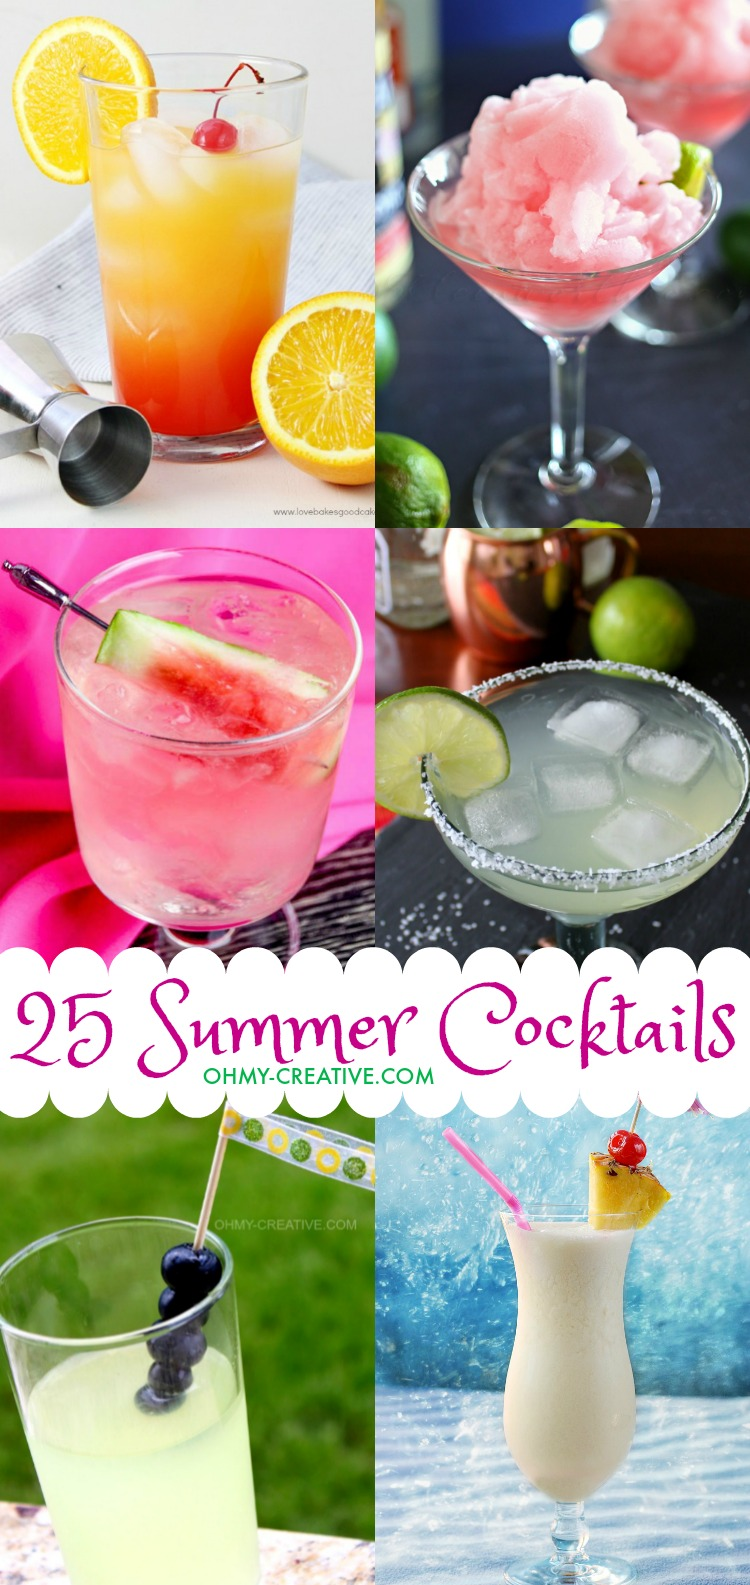 Cool down summers sizzling days with these 25 Fun Summer Cocktails! Perfect summer drinks for parties, picnics or sipping on the patio! | OHMY-CREATIVE.COM | Fun Summer Cocktails | Summer Cocktails | Summer Alcoholic Drinks | Summer Drink Recipes #cocktails #summercocktails #drinks